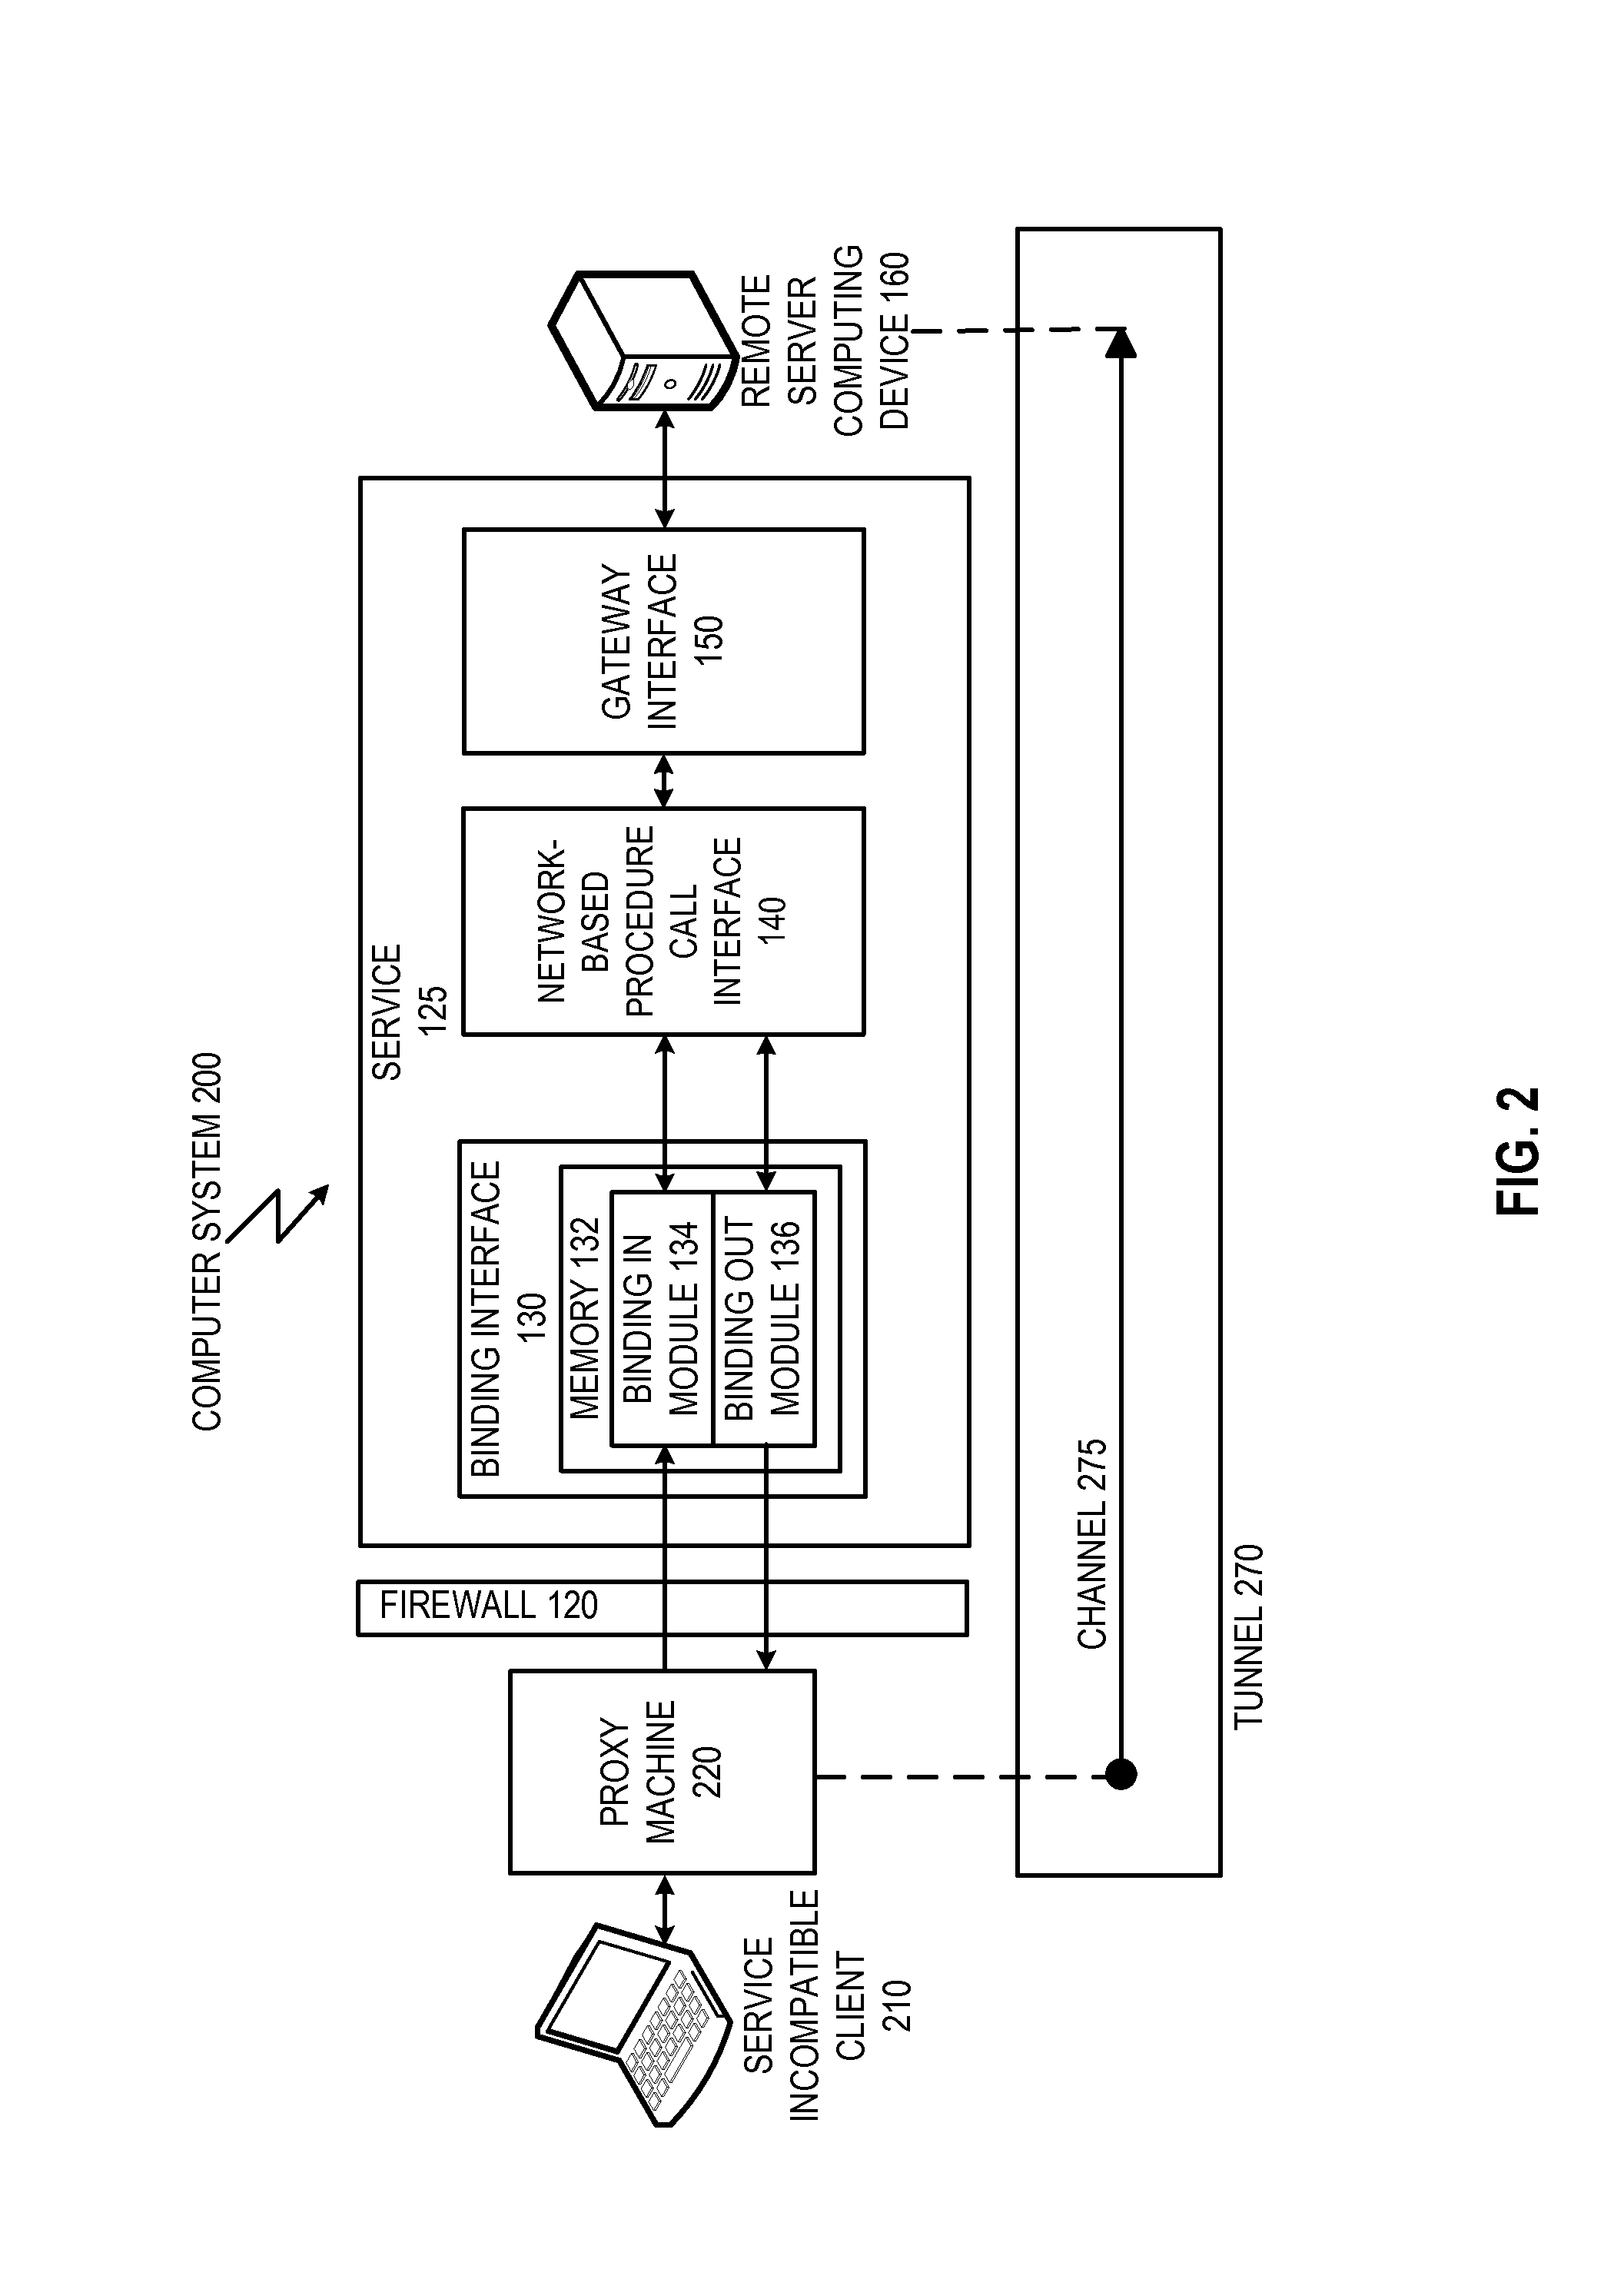 Patent US General Client Engine With Load Balancing - Basic http relay binding